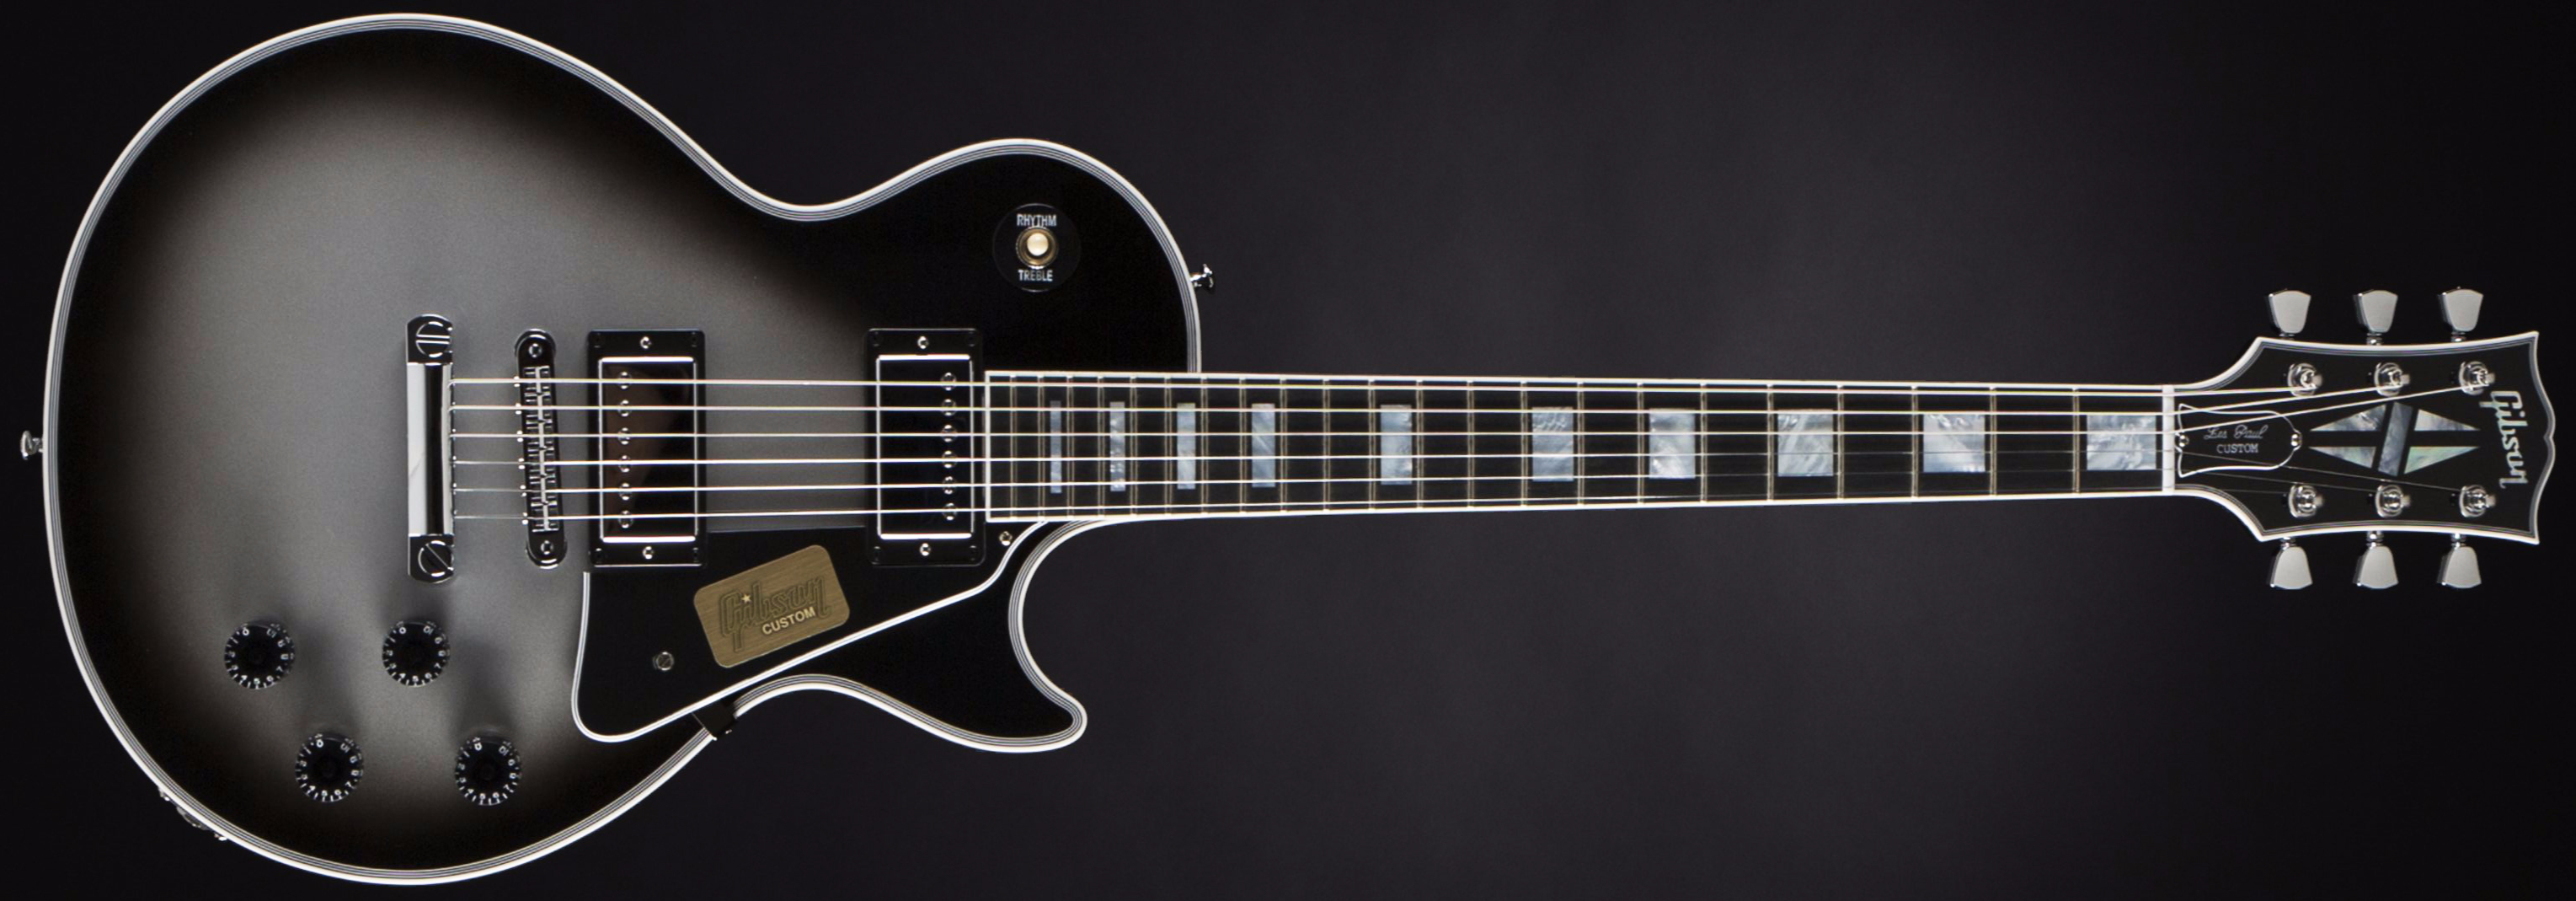 Gibson Les Paul Custom Silverburst Front